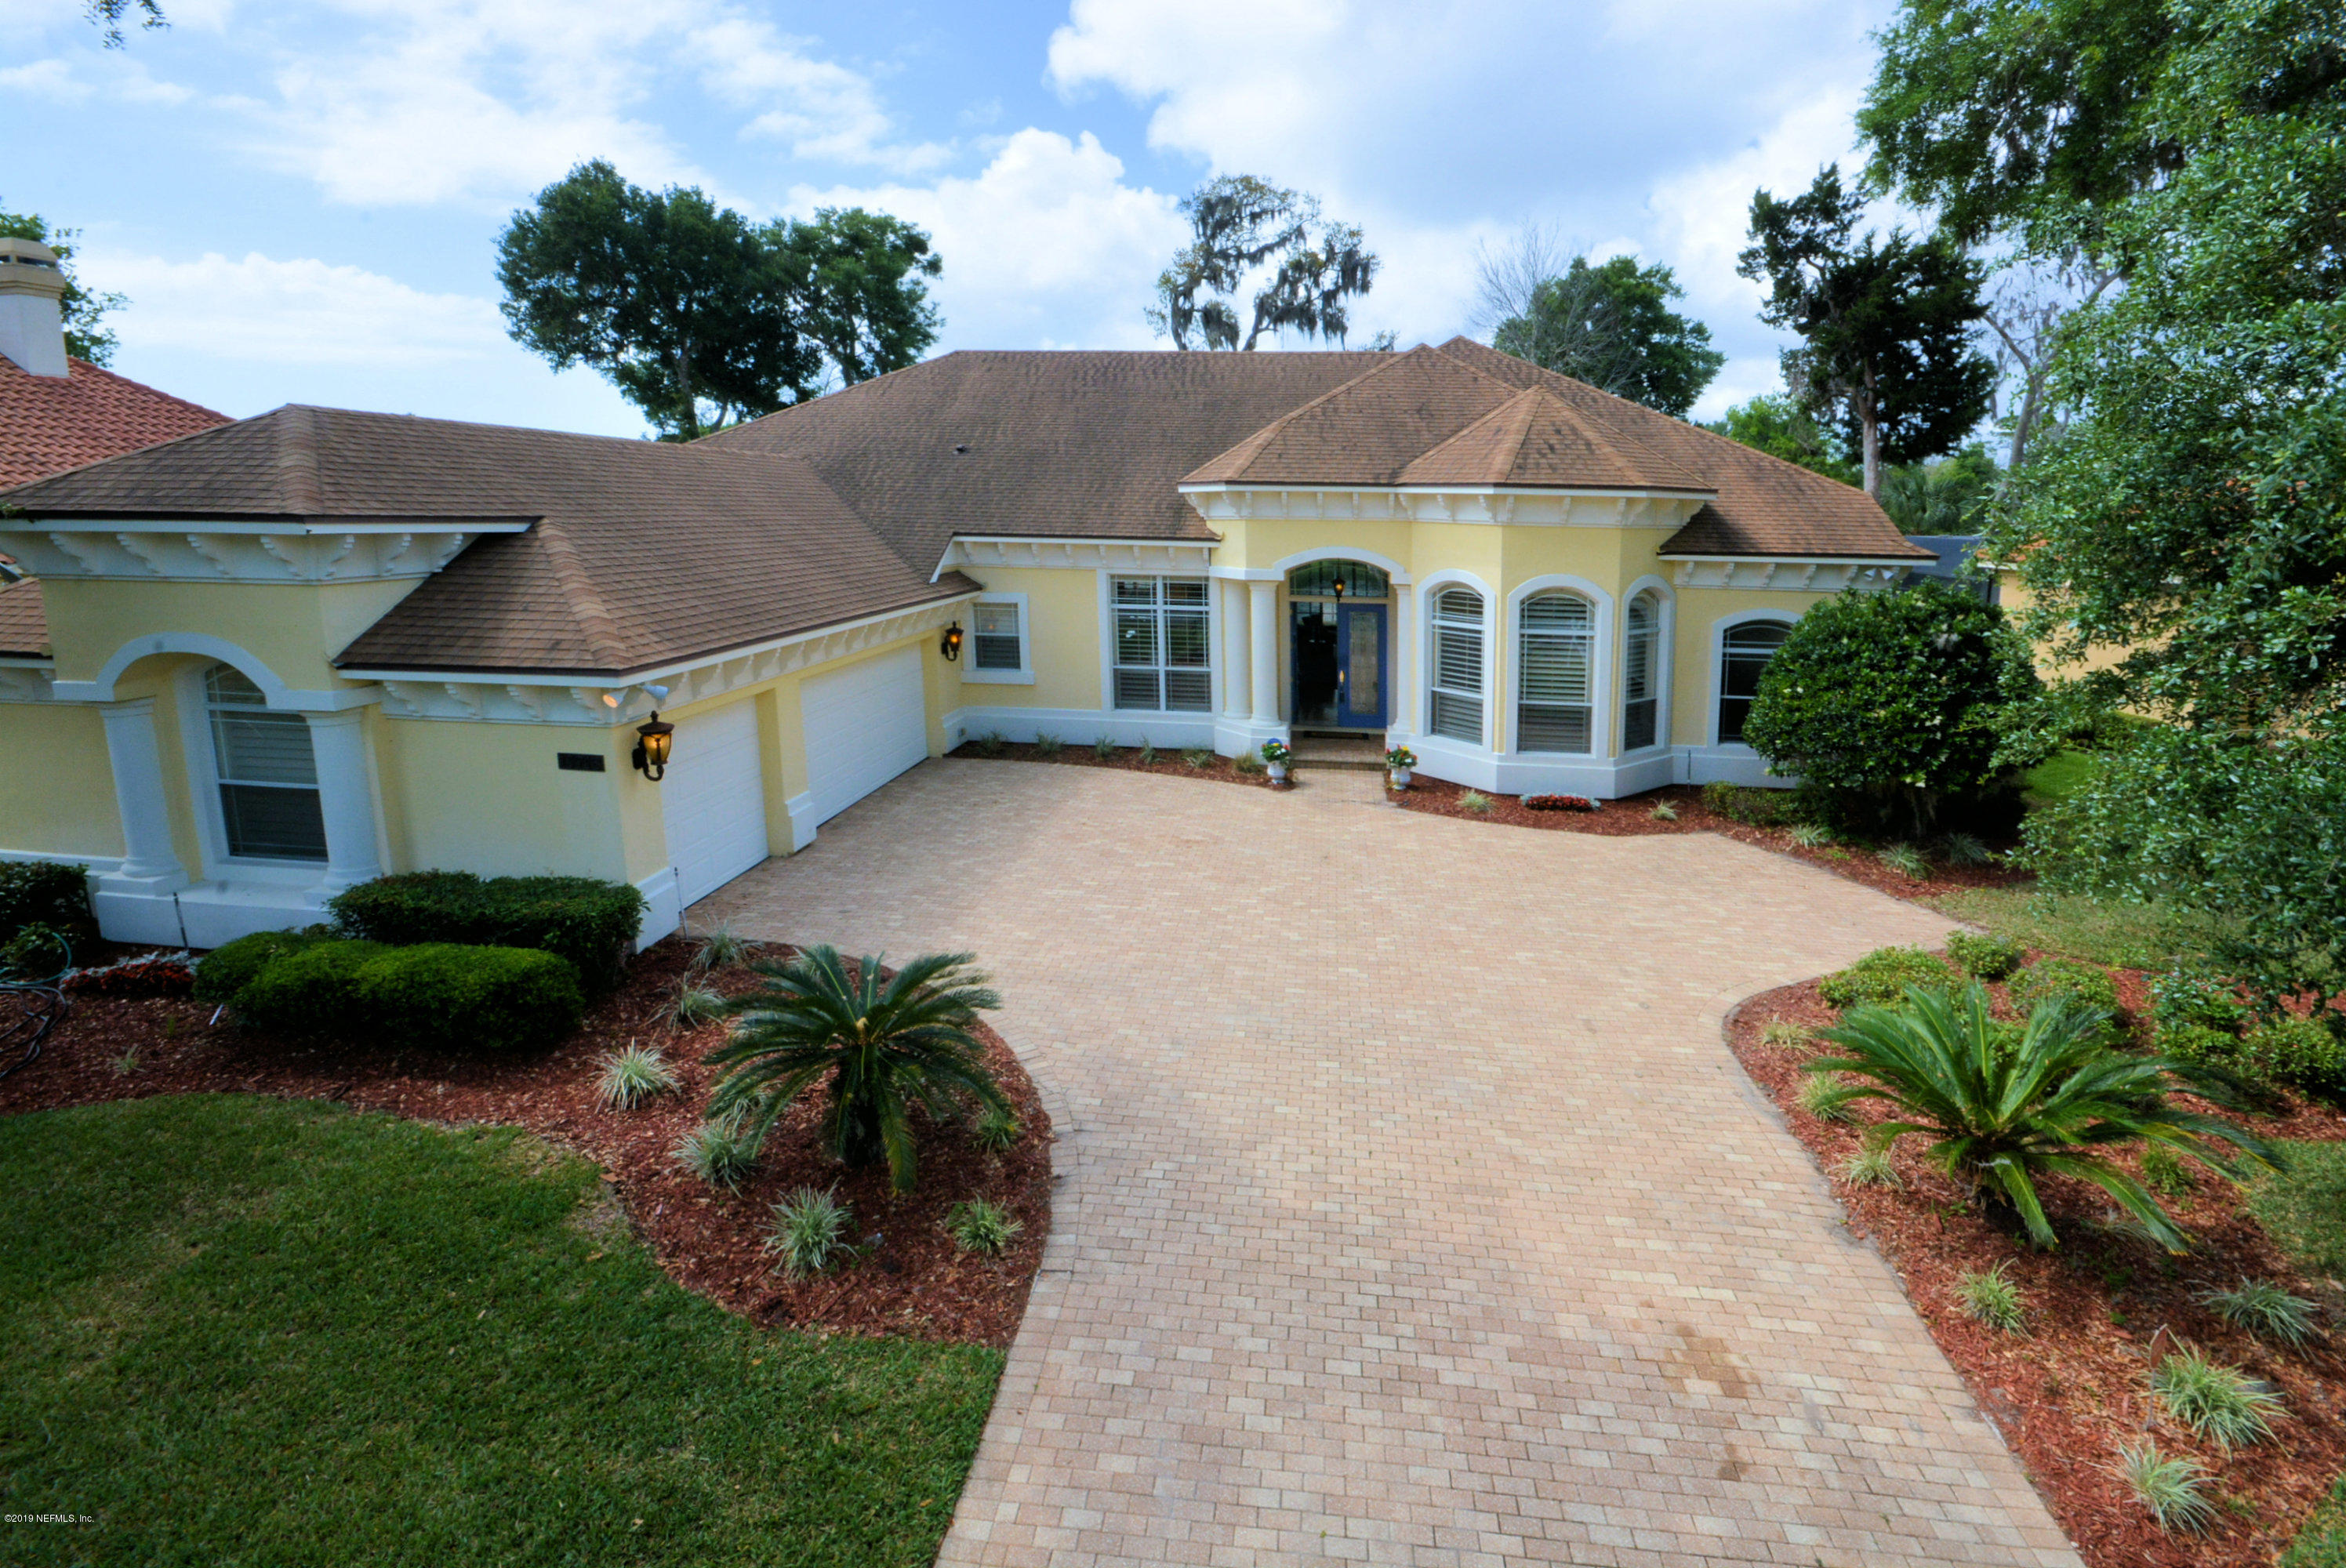 13718 SAXON LAKE, JACKSONVILLE, FLORIDA 32225, 5 Bedrooms Bedrooms, ,3 BathroomsBathrooms,Residential - single family,For sale,SAXON LAKE,1011341